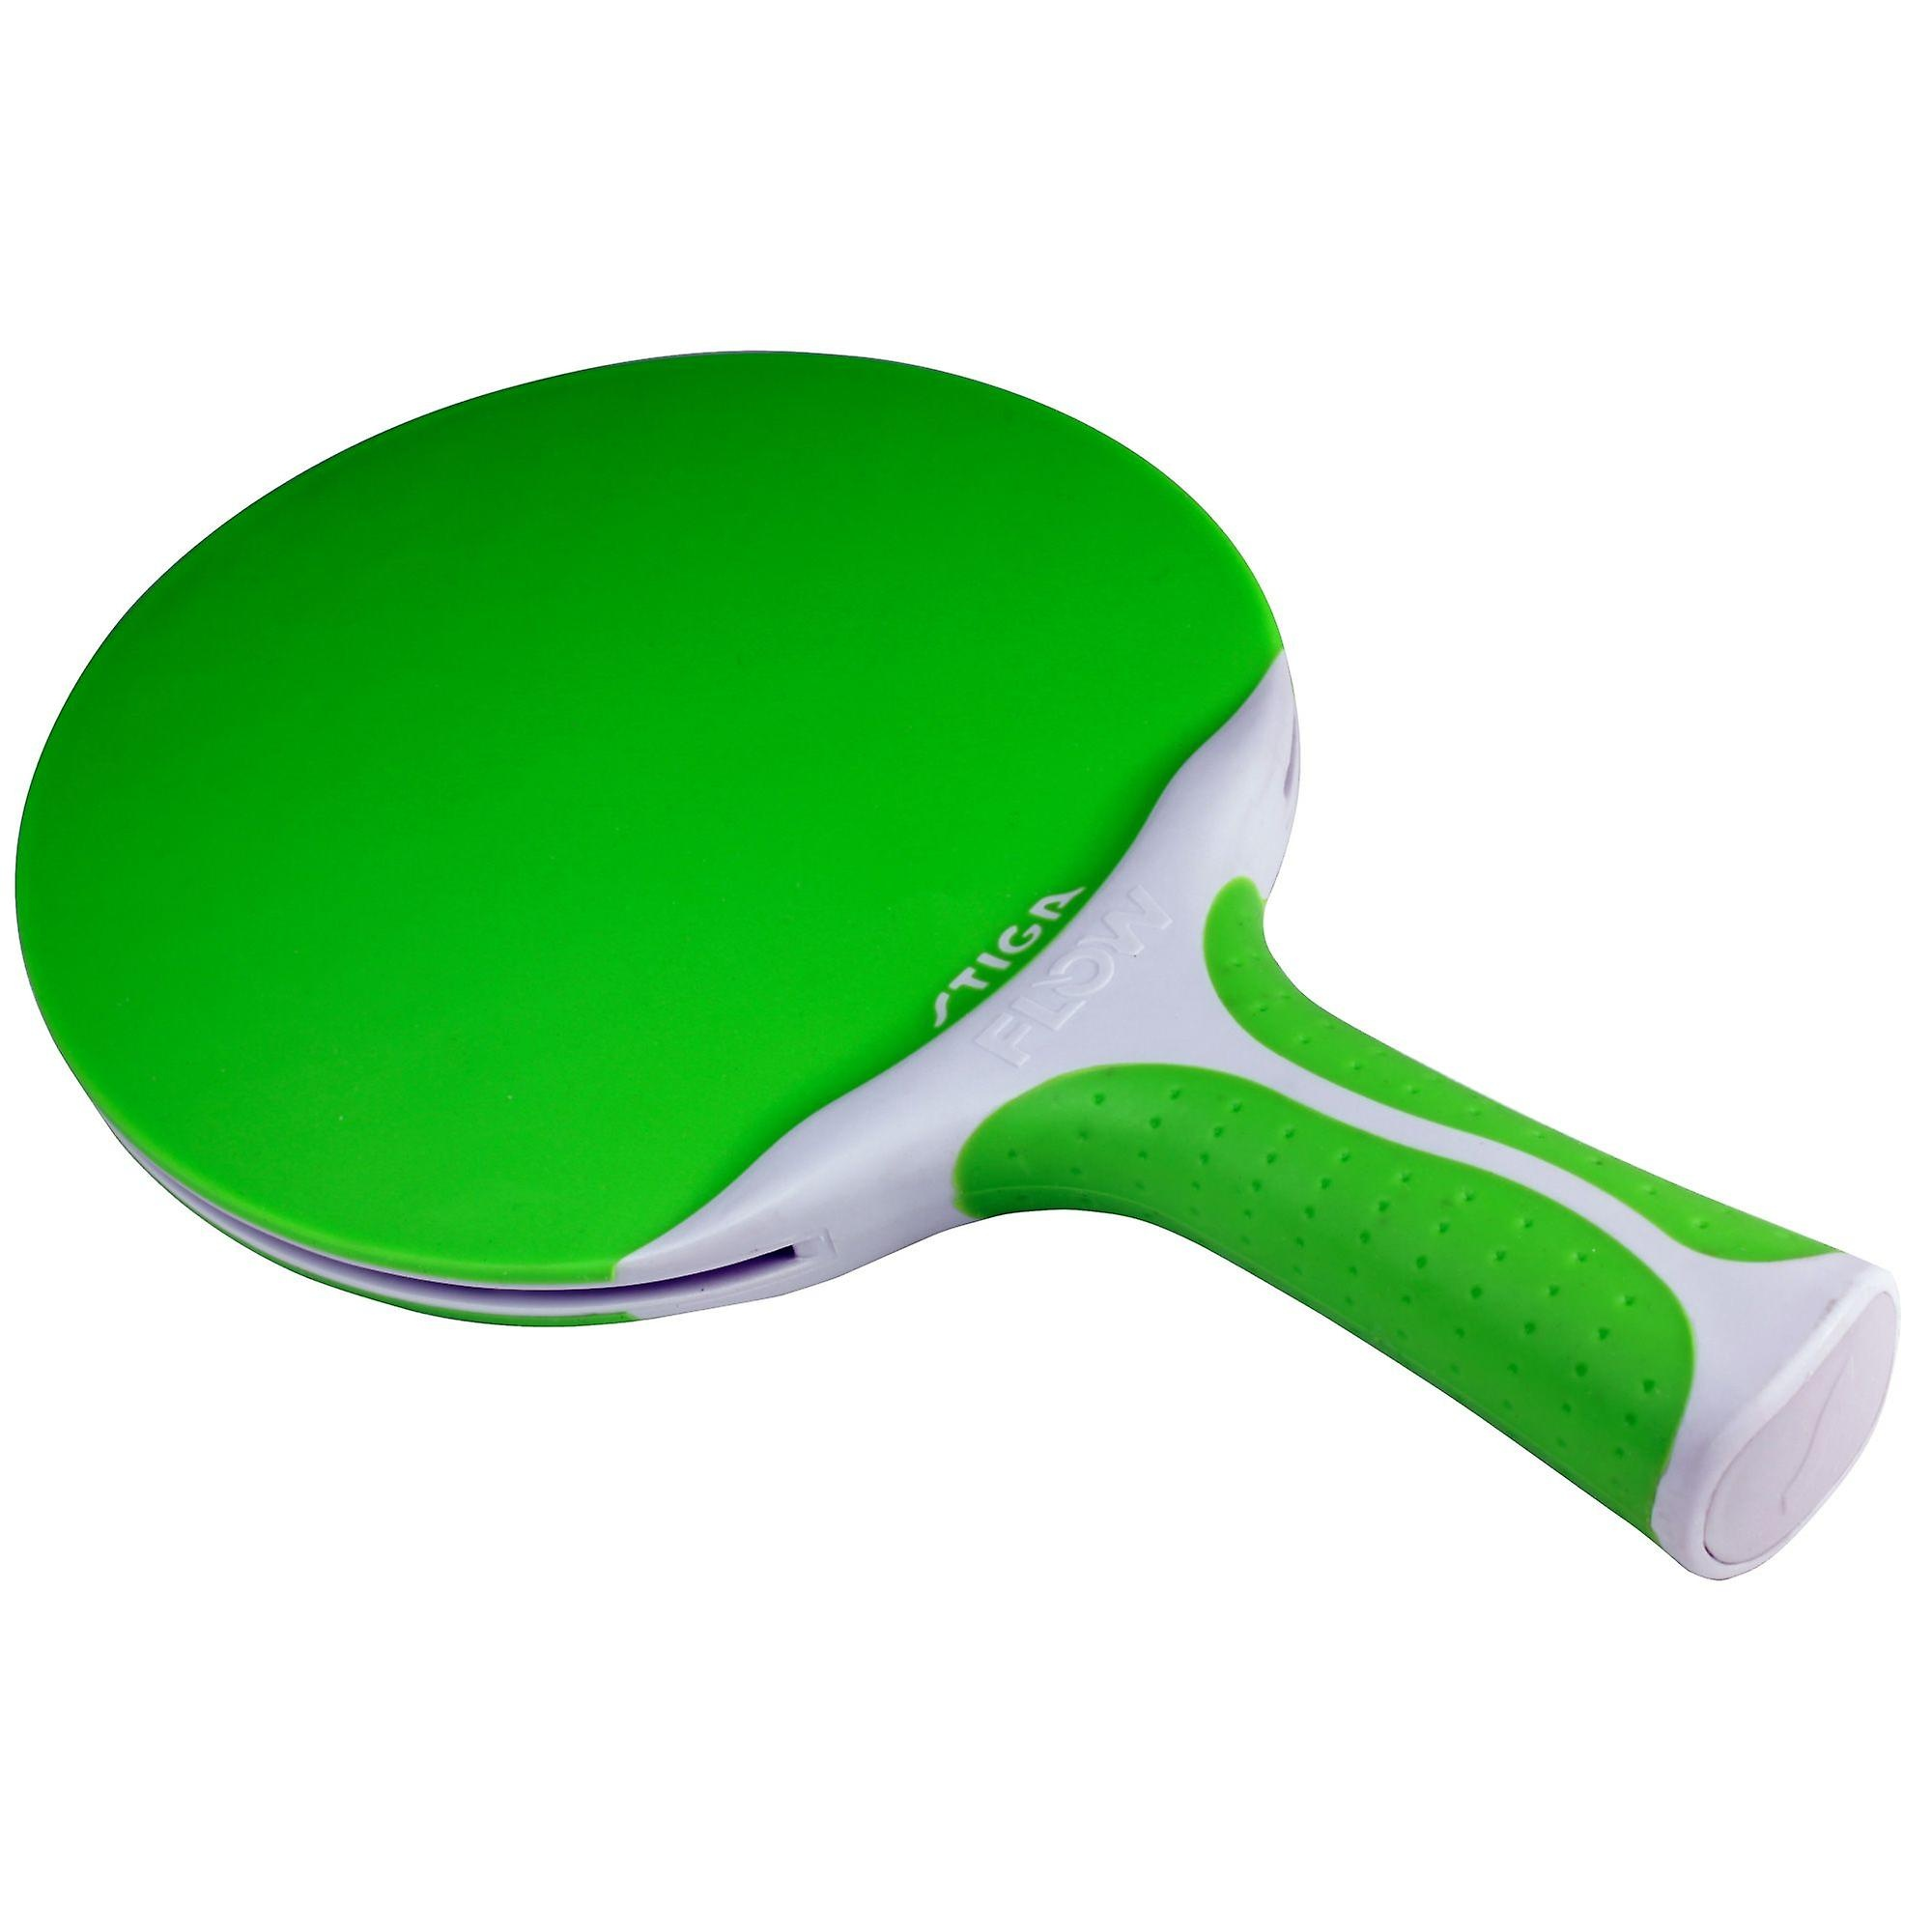 TABLE TENNIS BAT STIGA Flow Outdoor chauve-souris